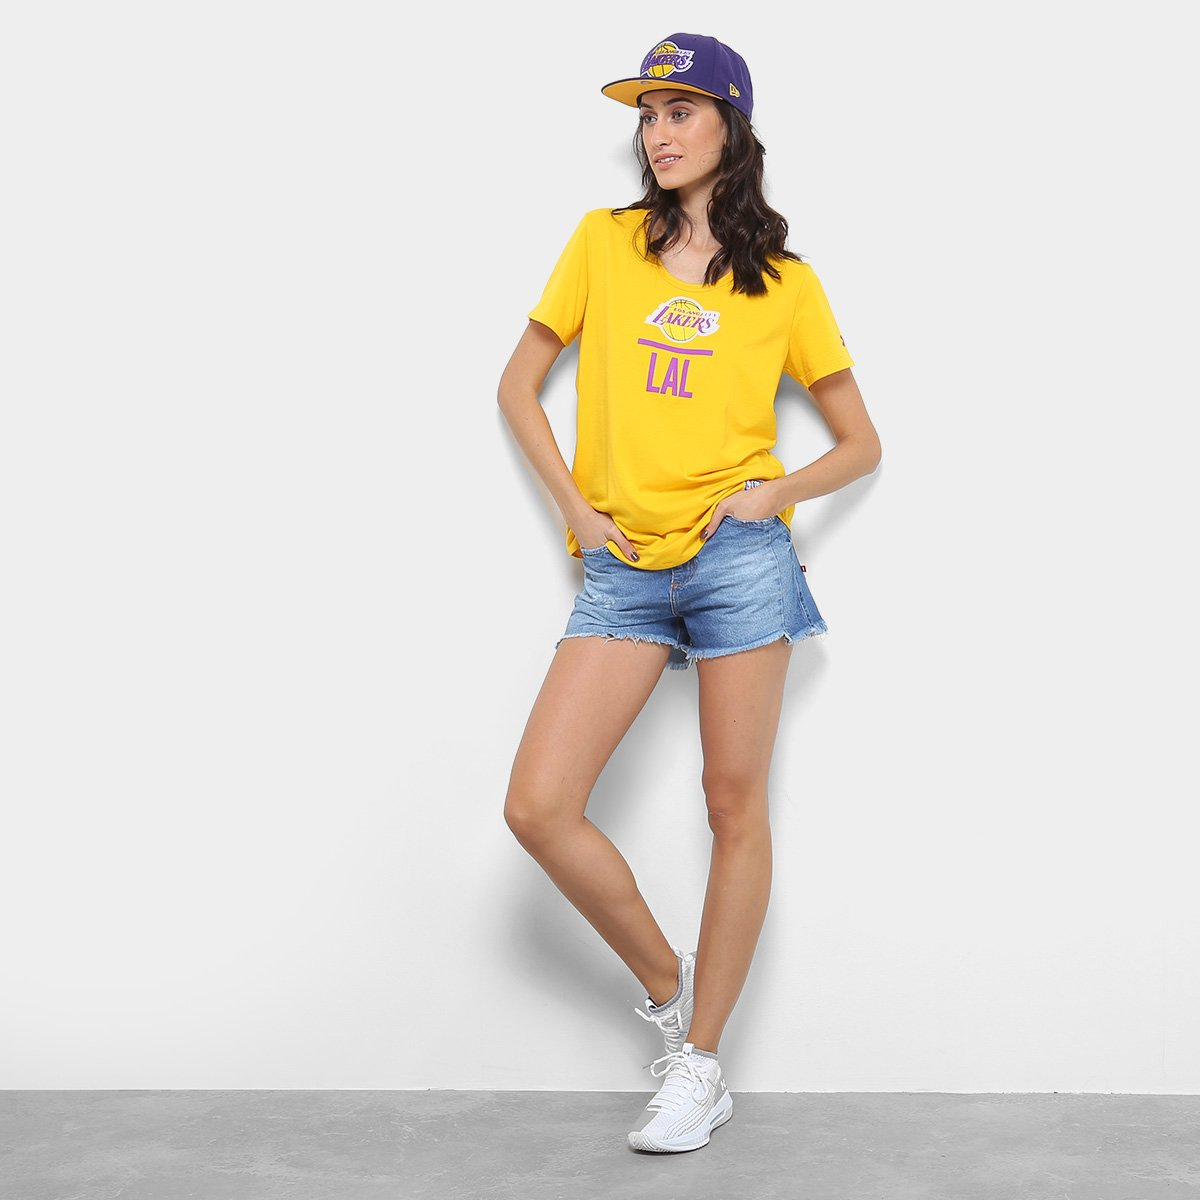 Camiseta Under Armour Lakers NBA Amarelo Camiseta NBA Under Armour Feminina Combine 4P4qp